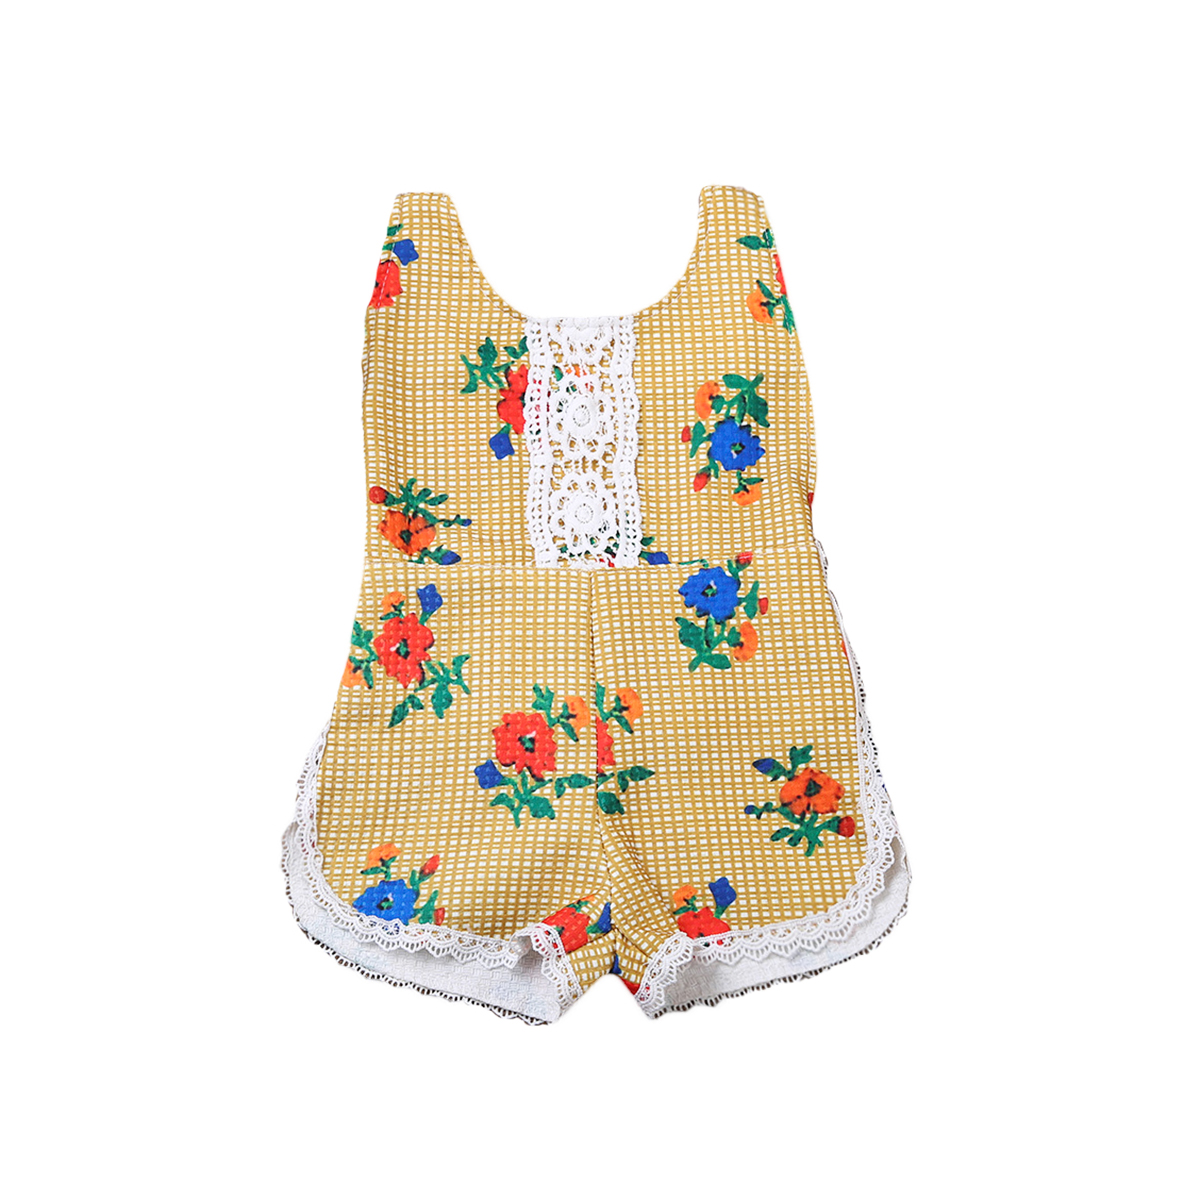 Toddler Newborn Infant Baby Girl Floral Romper Jumpsuit Outfits Summer Baby Girl Clothes Sunsuit Cotton Baby Onesie Outfit newborn infant baby clothes girl floral strap lace romper jumpsuit playsuit outfit cute summer baby romper onesie